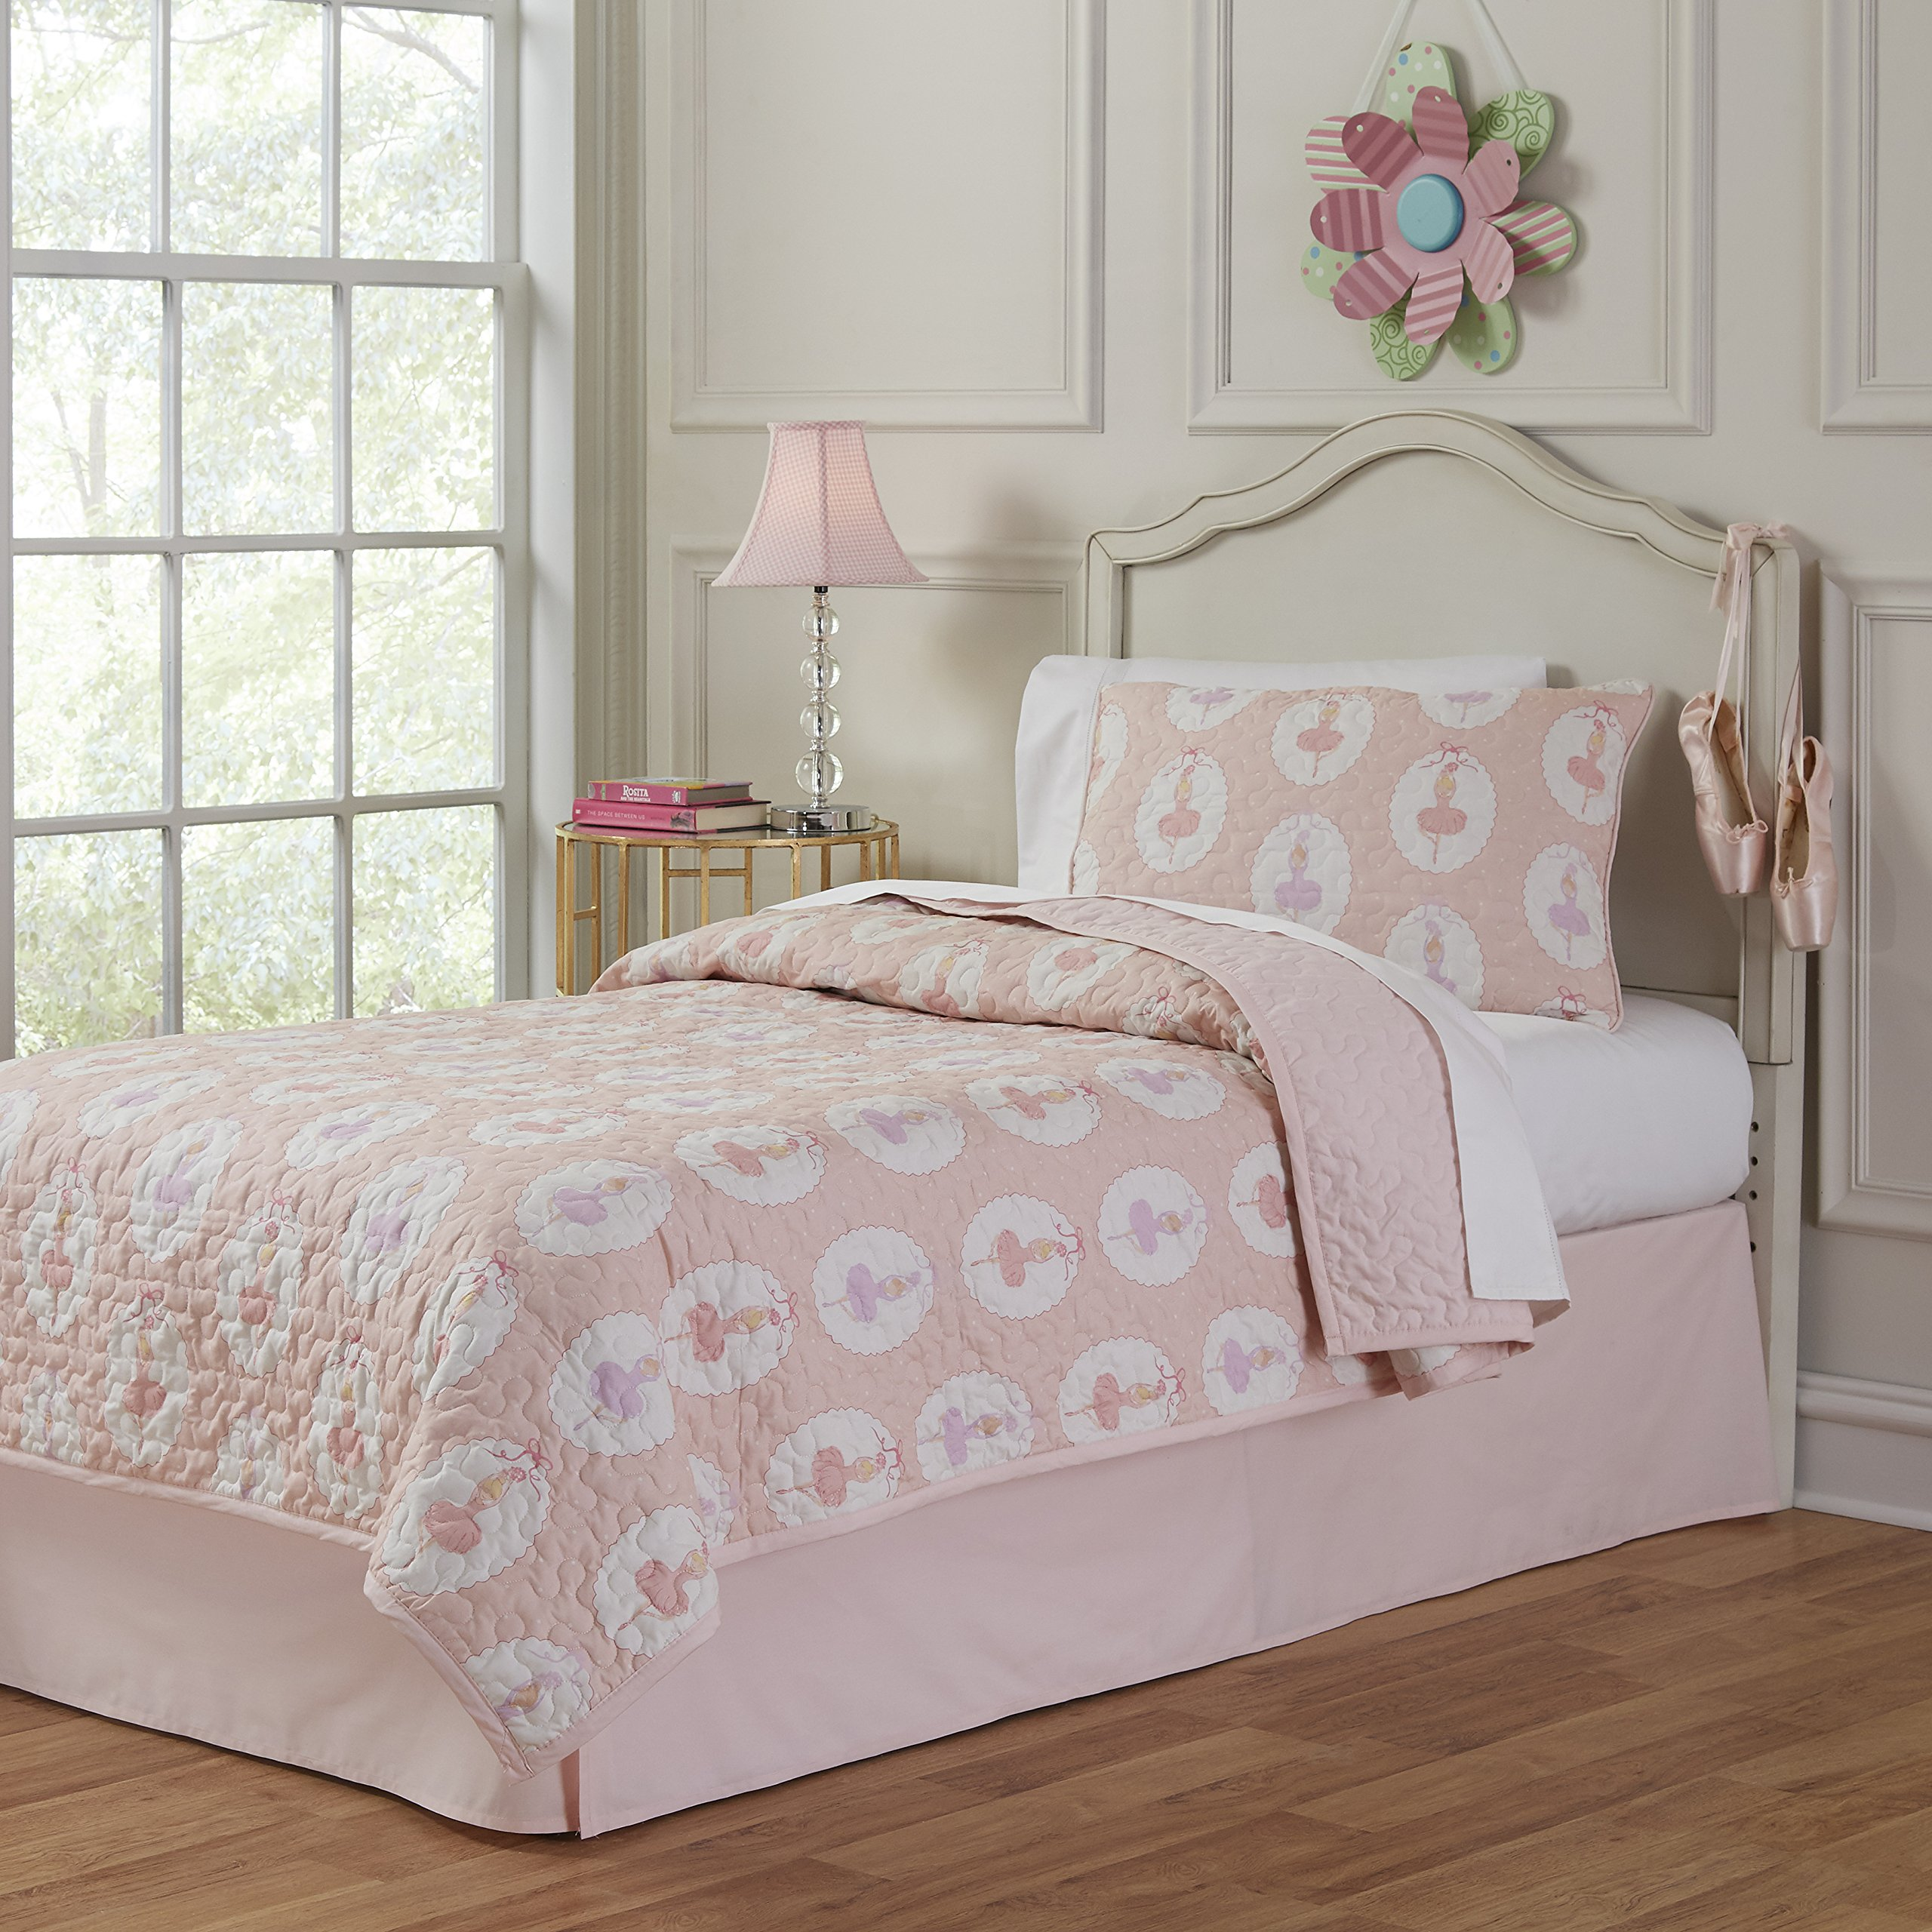 Lullaby Bedding 200QL-FQBrina Ballerina Full/Queen Cotton Printed 3 Piece Quilt Set,